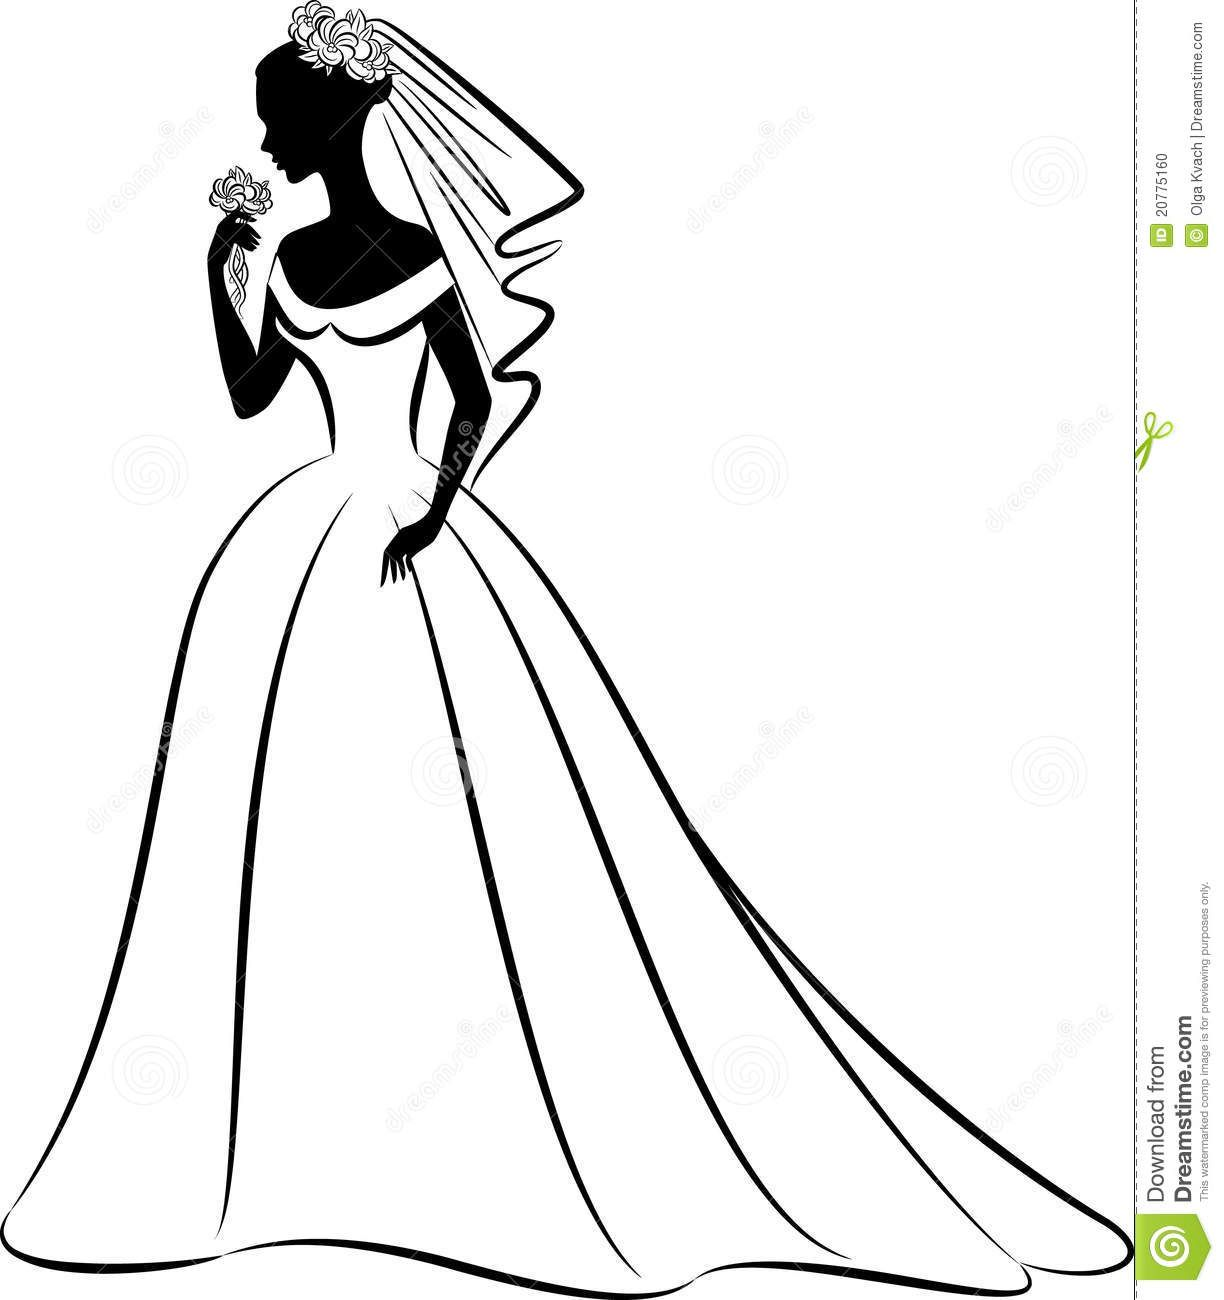 Wedding+dress+clipart.